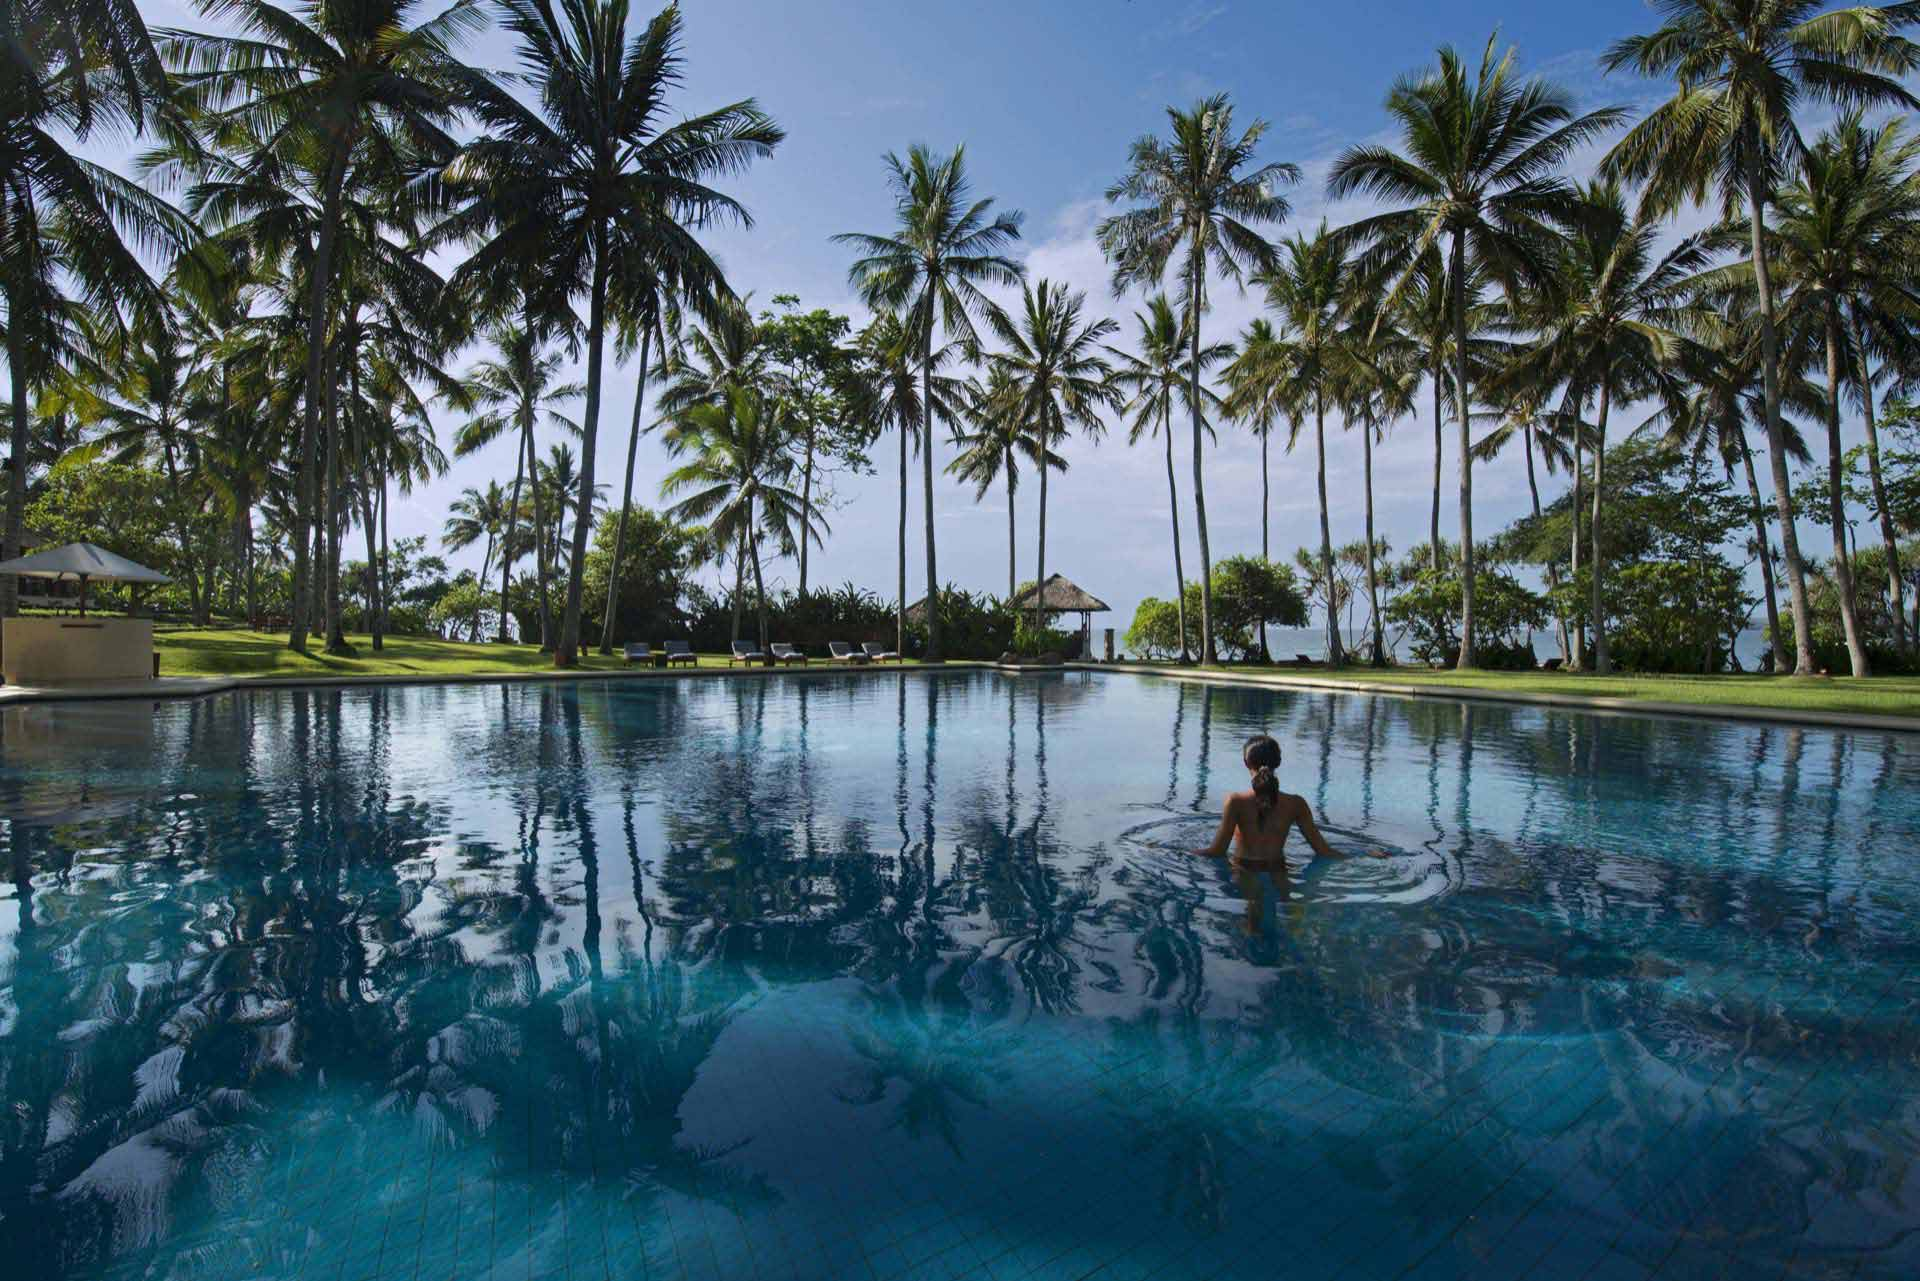 Wellness Bali with Rachel Hunterimage